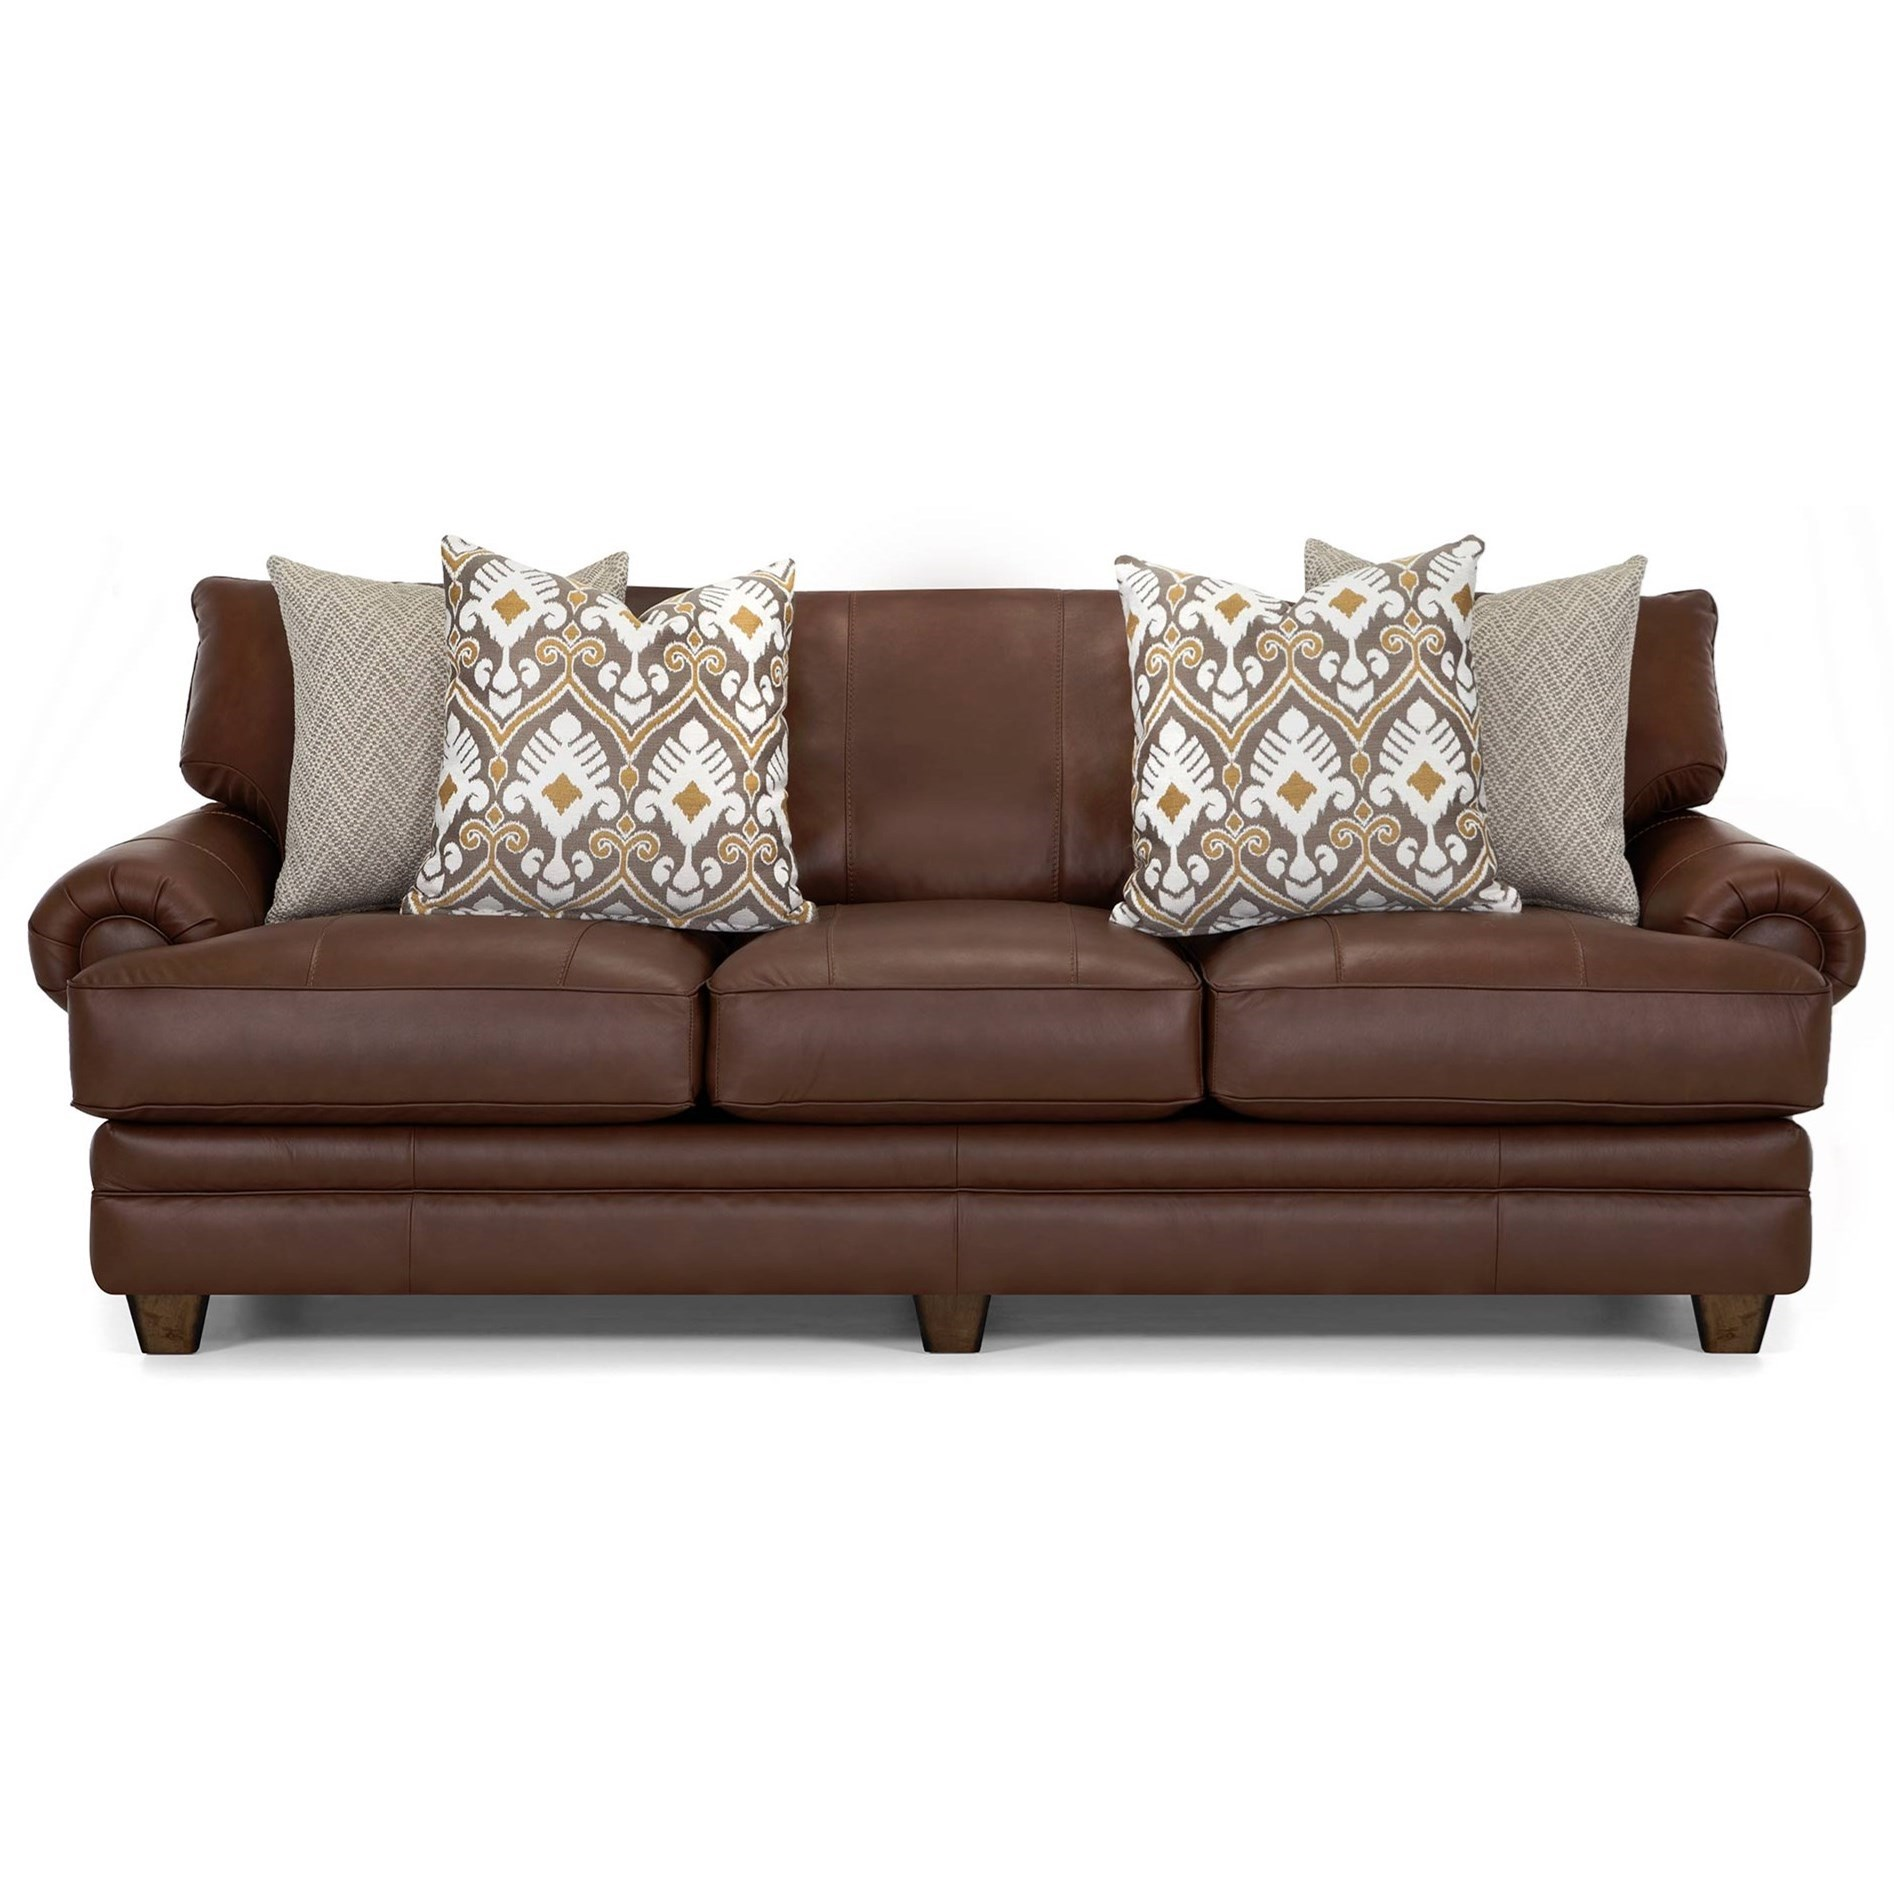 957 Sofa by Franklin at Wilcox Furniture